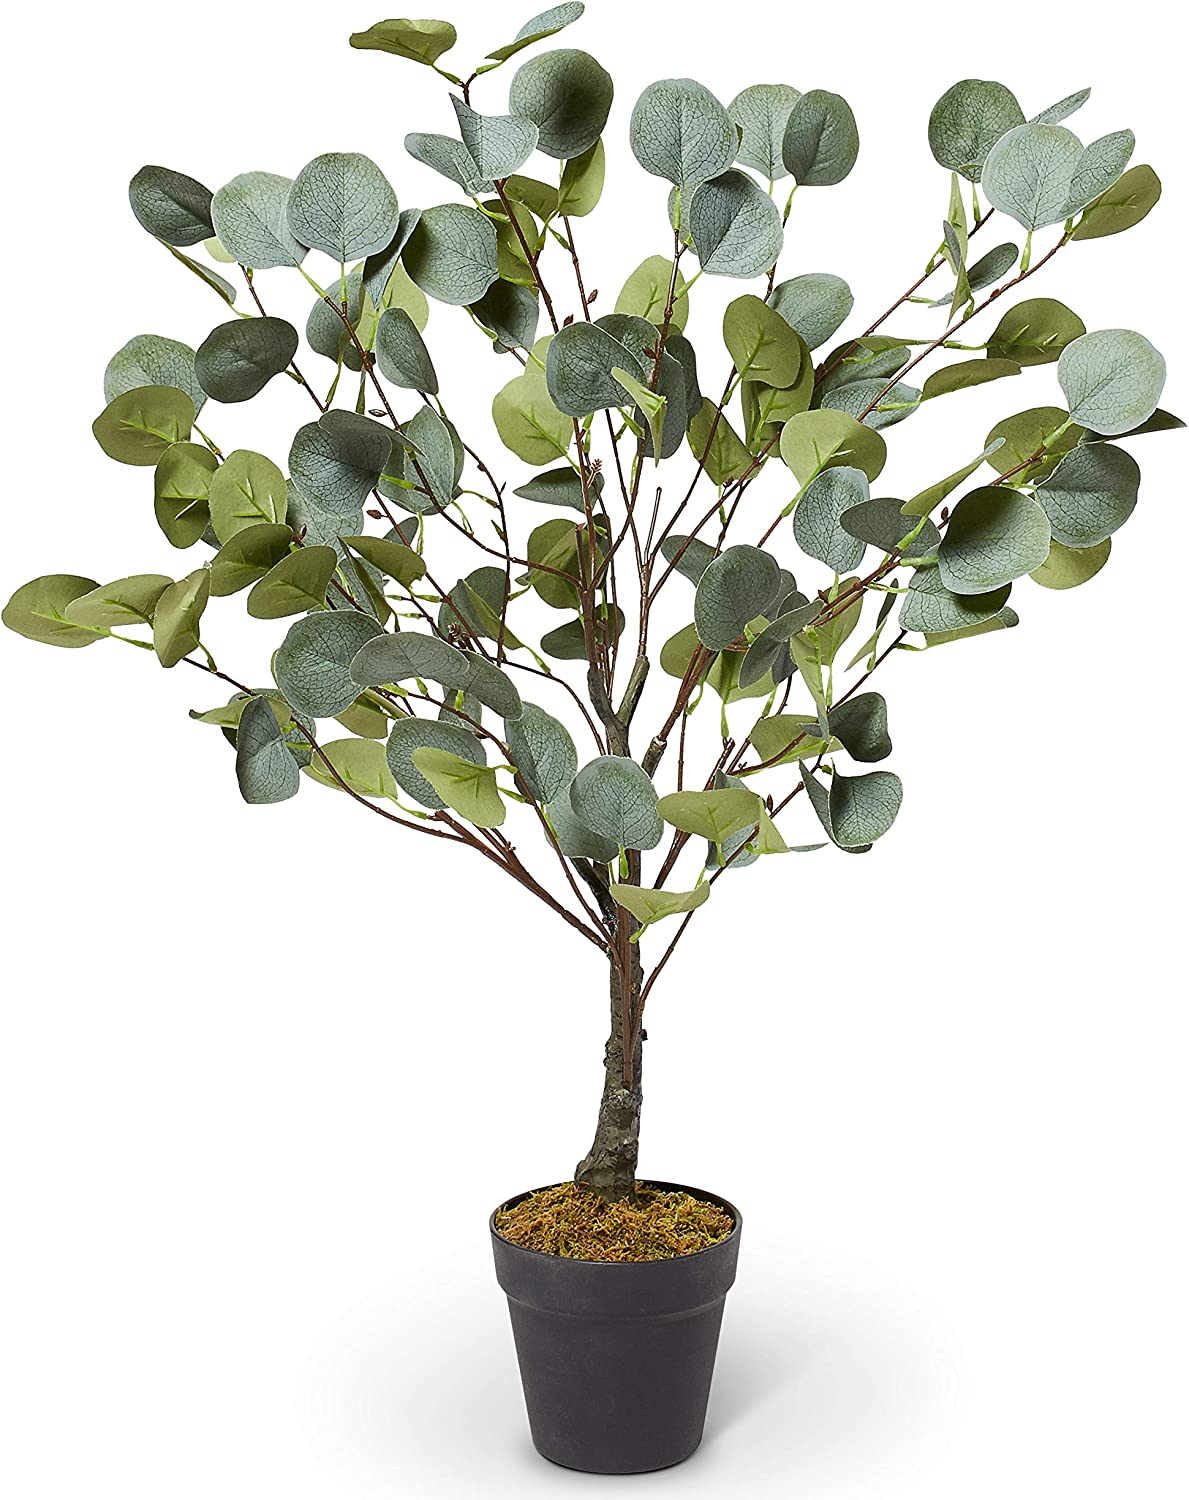 Winvictory Dynamic Concepts, Potted Eucalyptus Tree, Faux Plant in Pot, Artificial Greenery, Office Plants, Tall, Farmhouse Decor, Artificial Potted Plant, Silver Dollar, Office/Kitchen Plant-